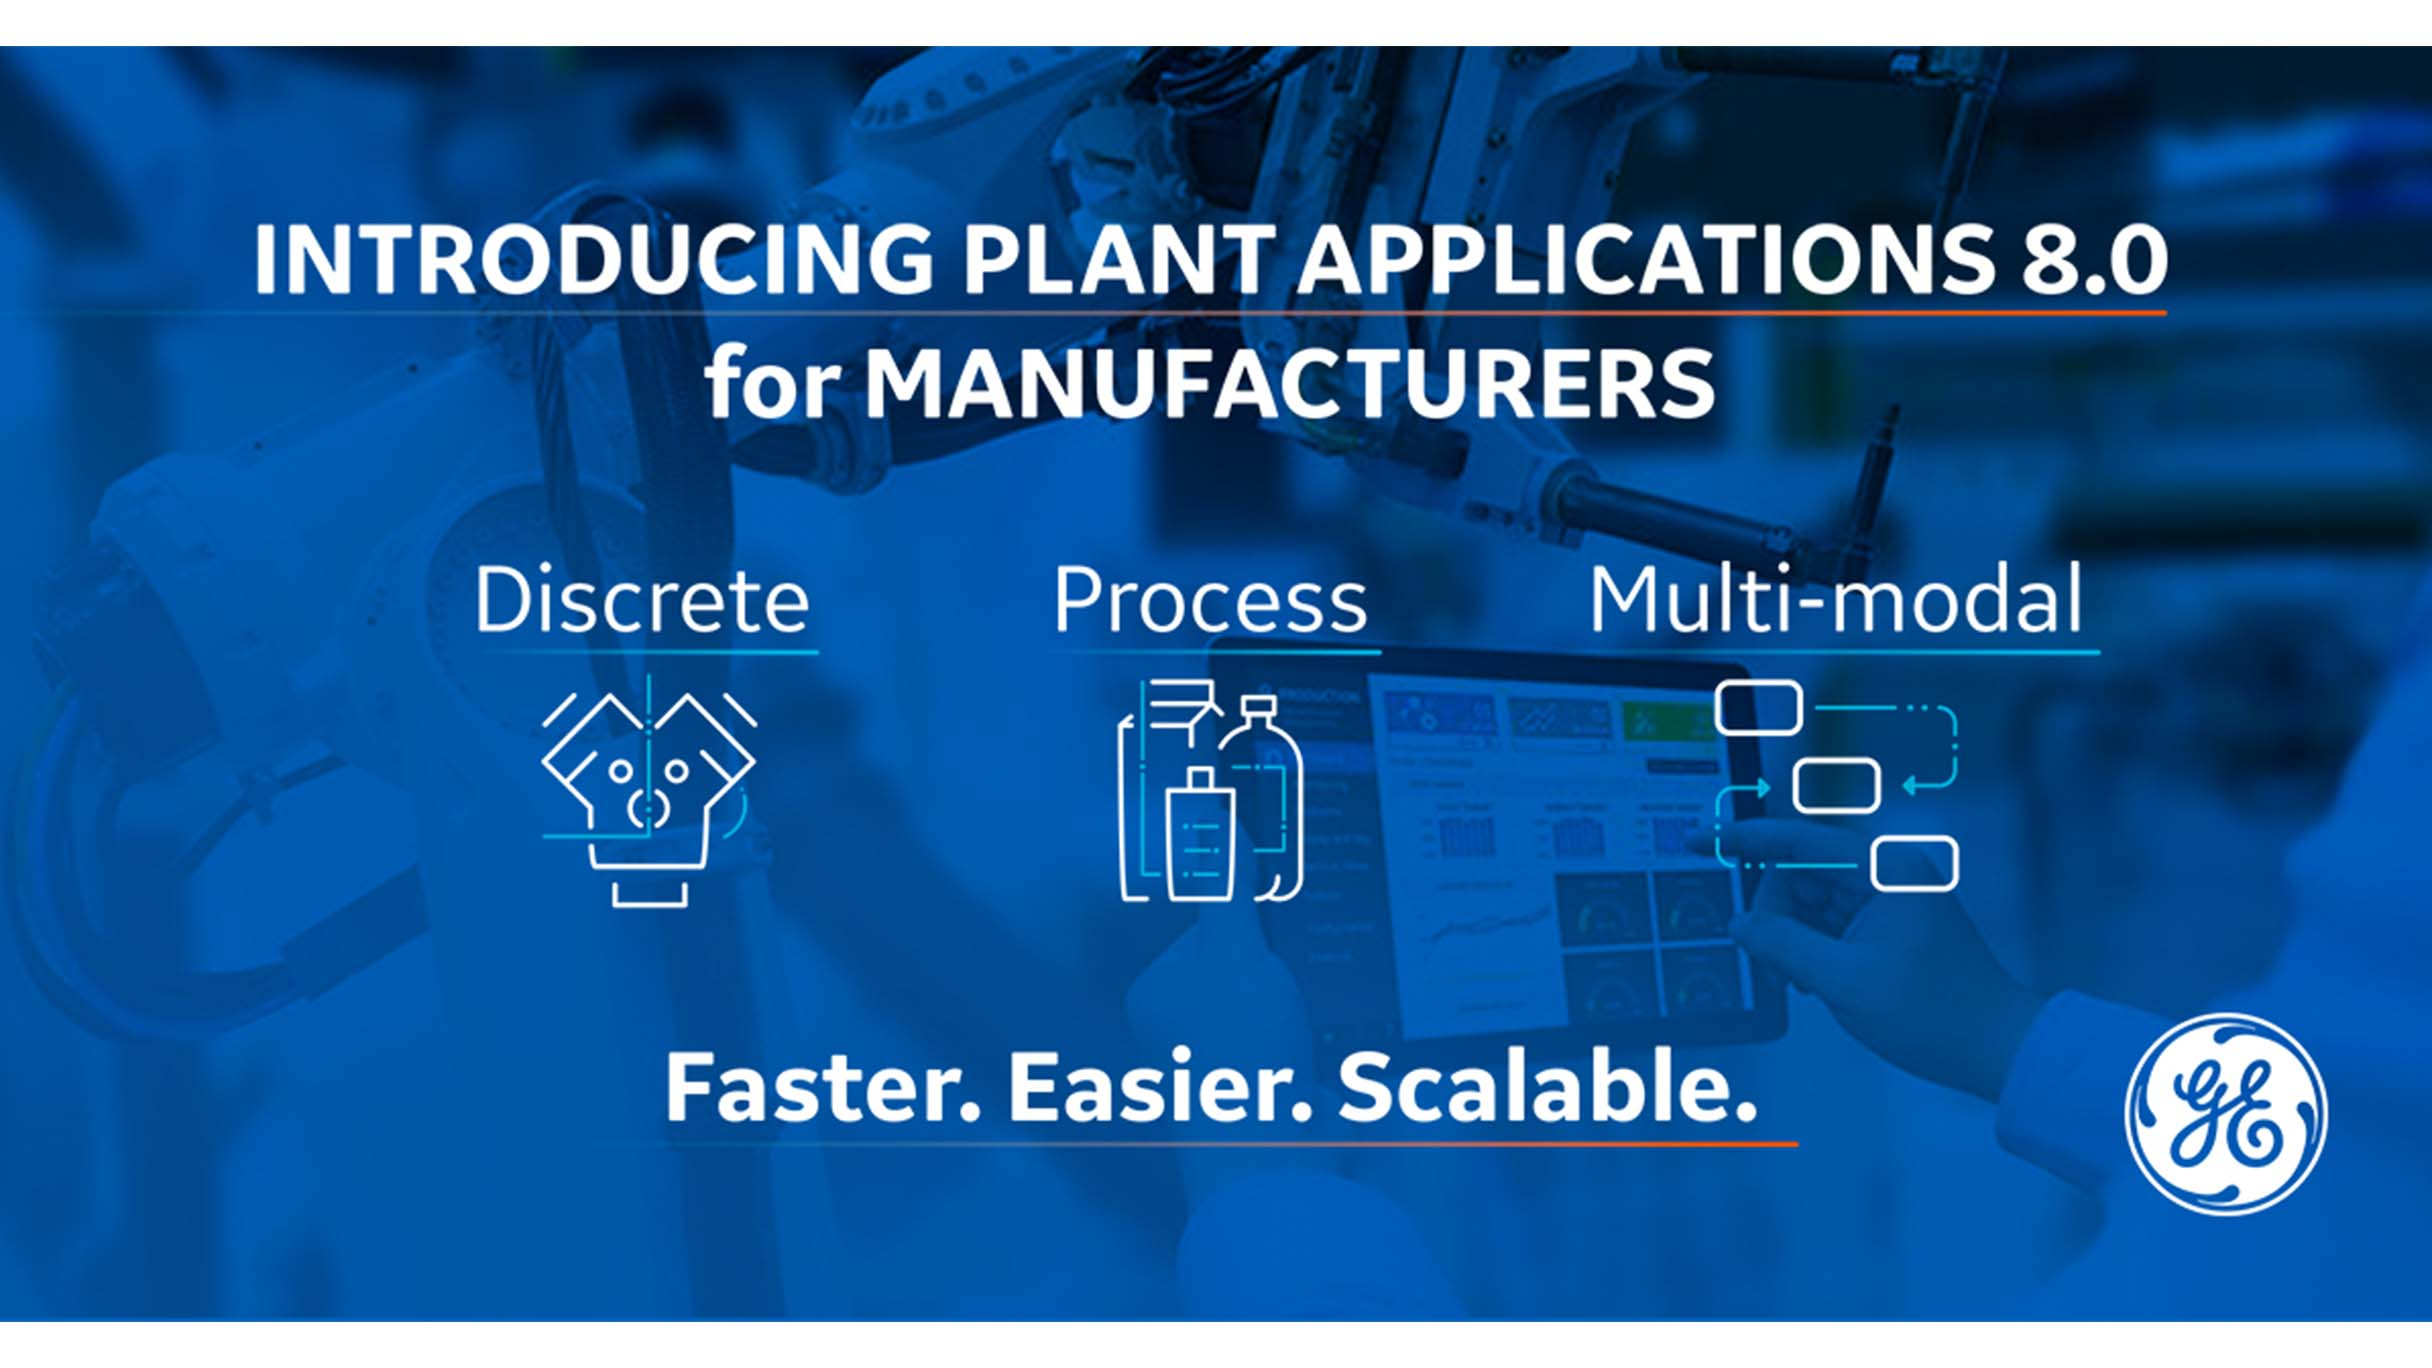 Plant Applications from GE Digital enables real-time KPIs | screenshot